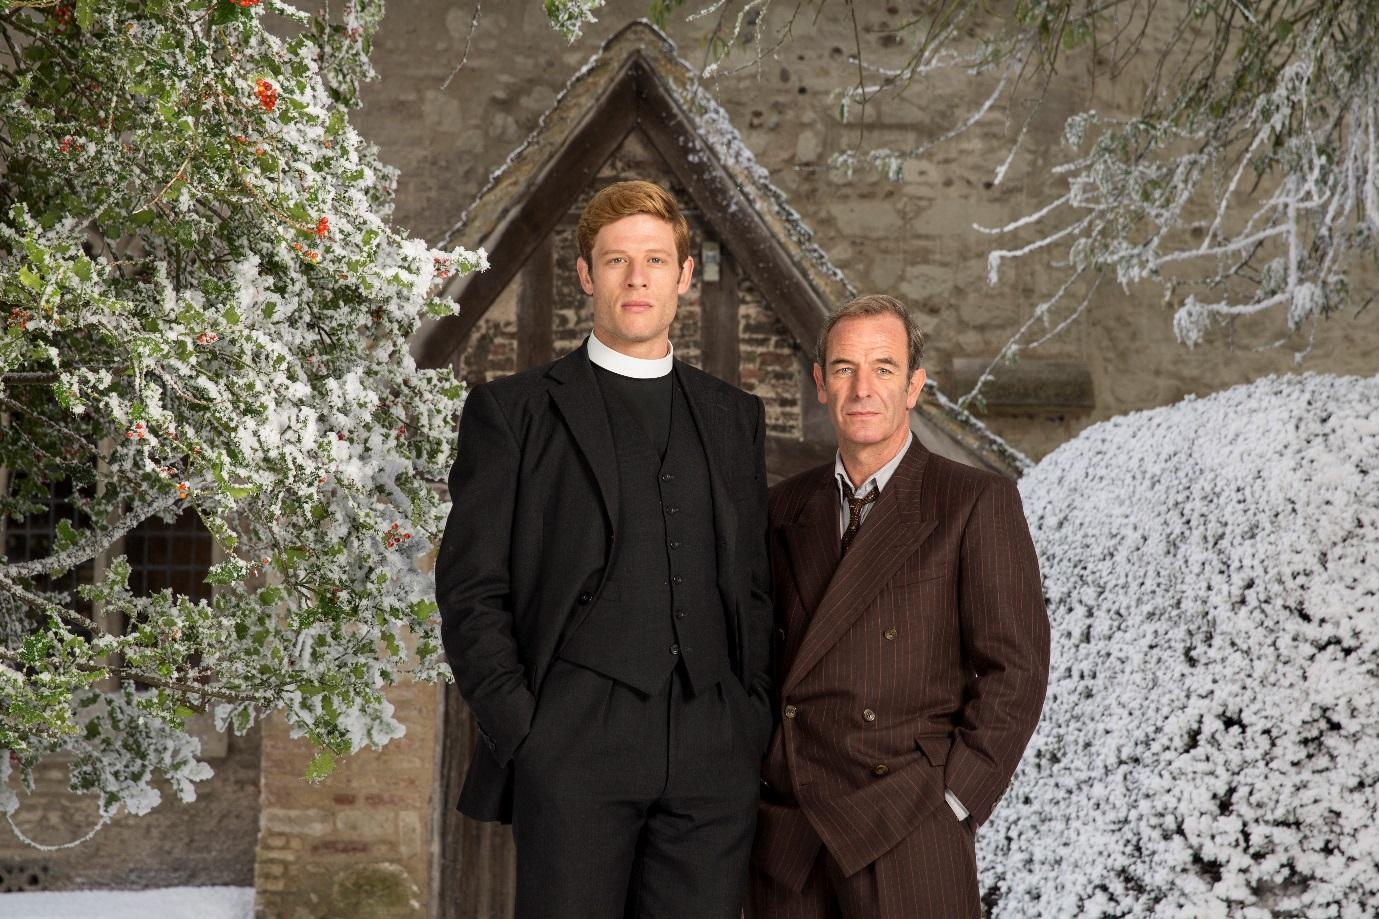 \\worldwide.bbc.co.uk\dfs\SIN\Regional\Channels Marketing\Programmes Pics & Info\BBC First\Grantchester Christmas Special\Grantchester Christmas Special_High-Res_IMG02.jpg